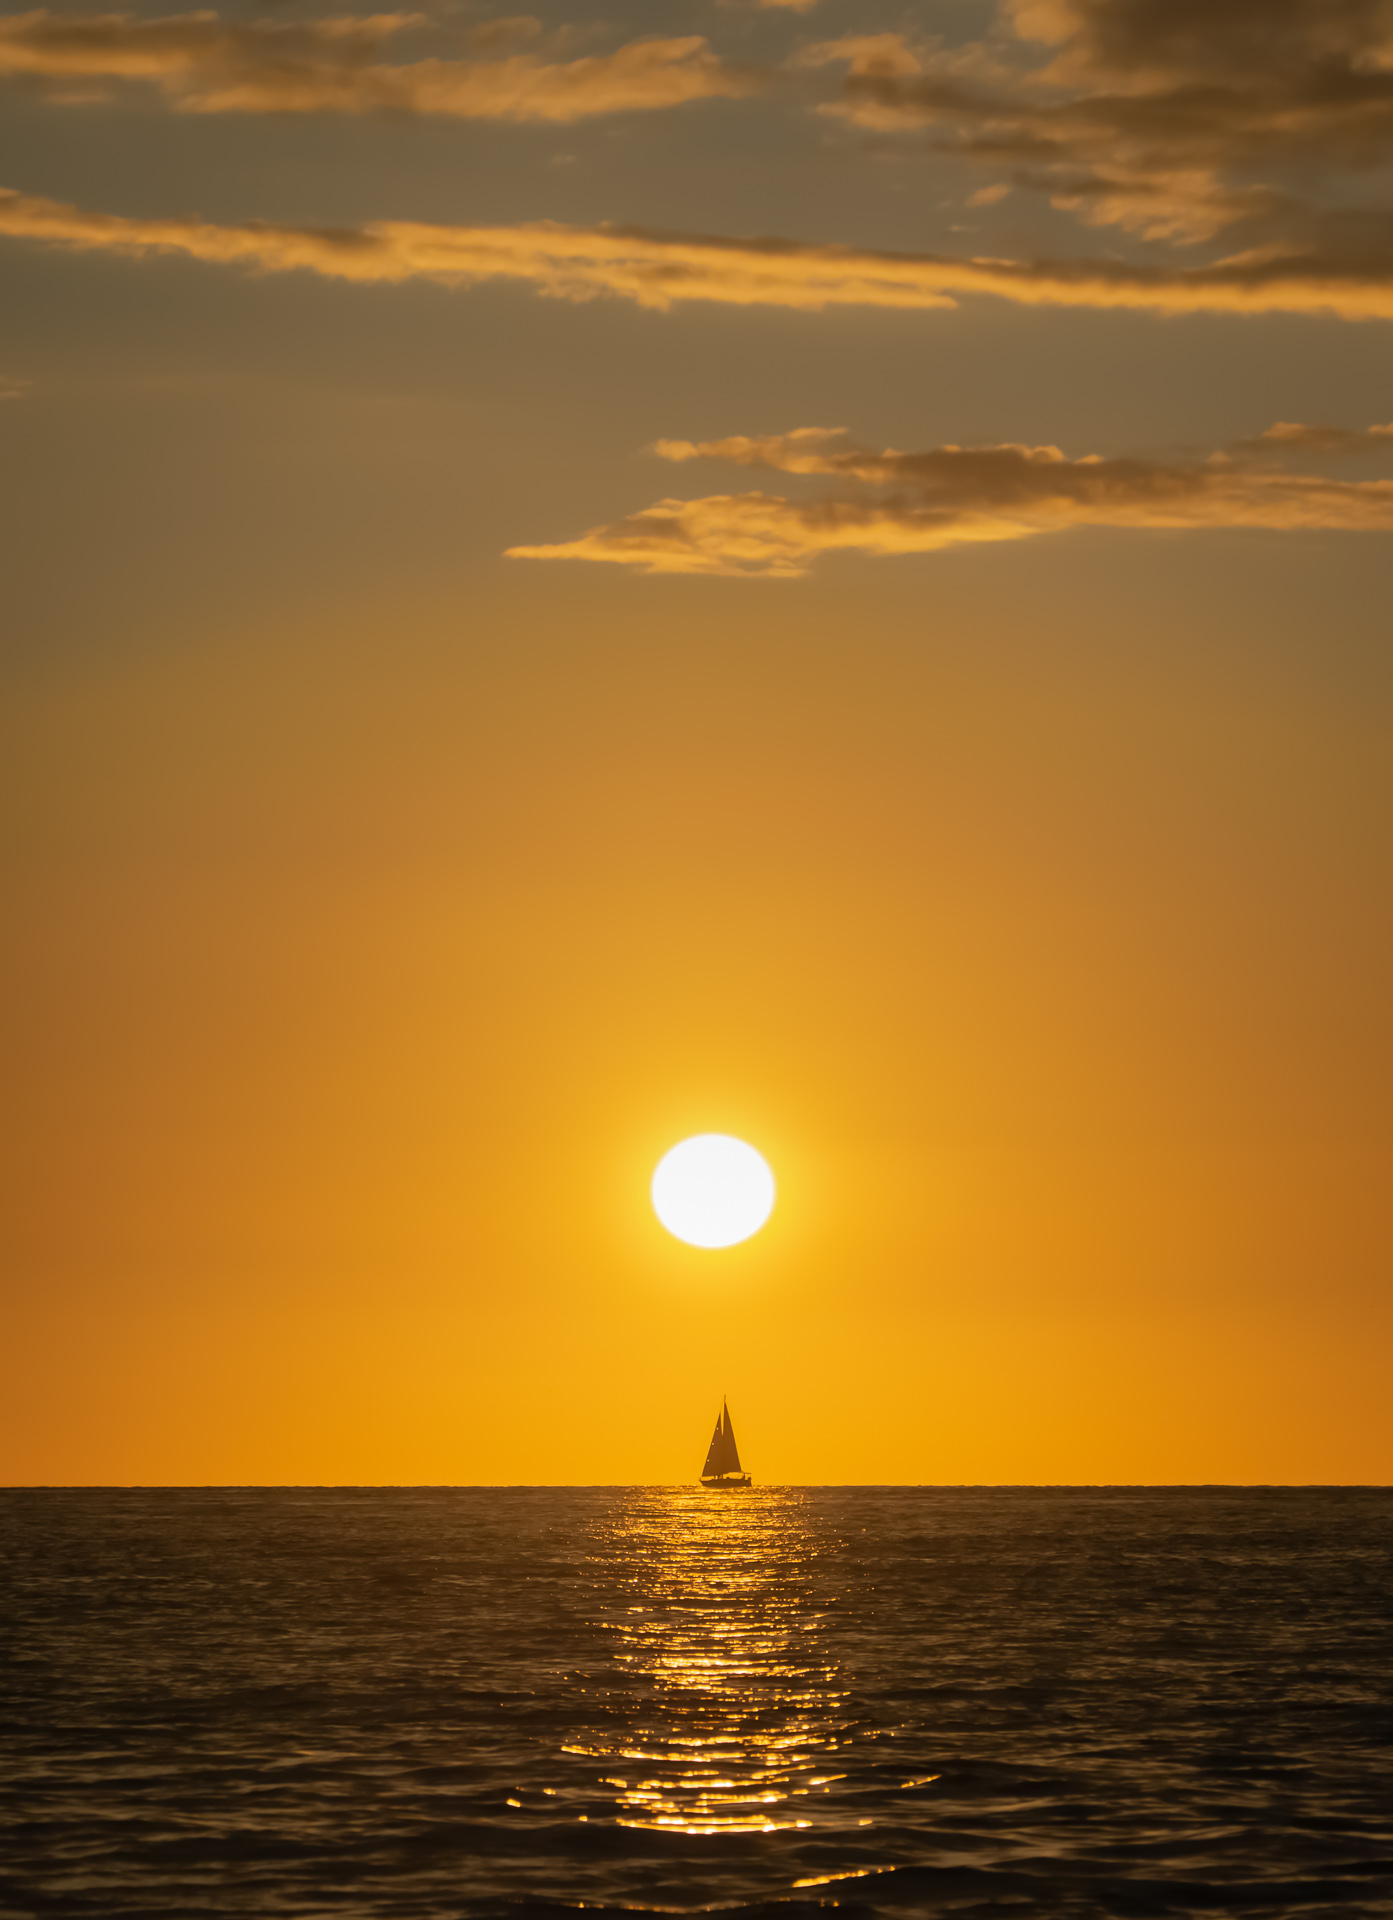 Sailboat in the Sunset